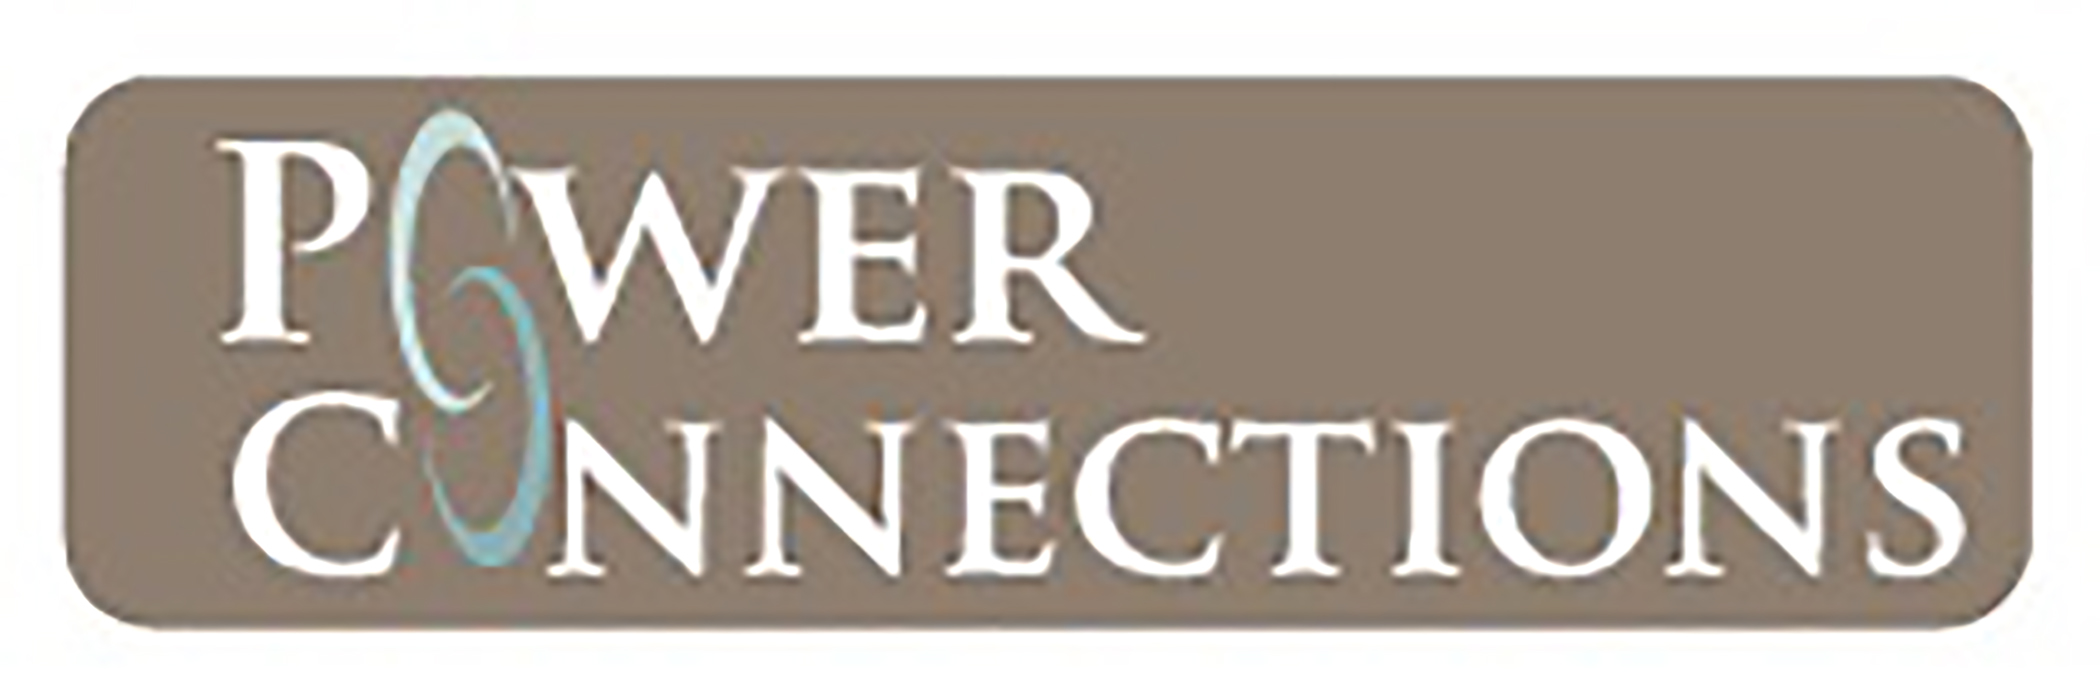 Power Connections logo